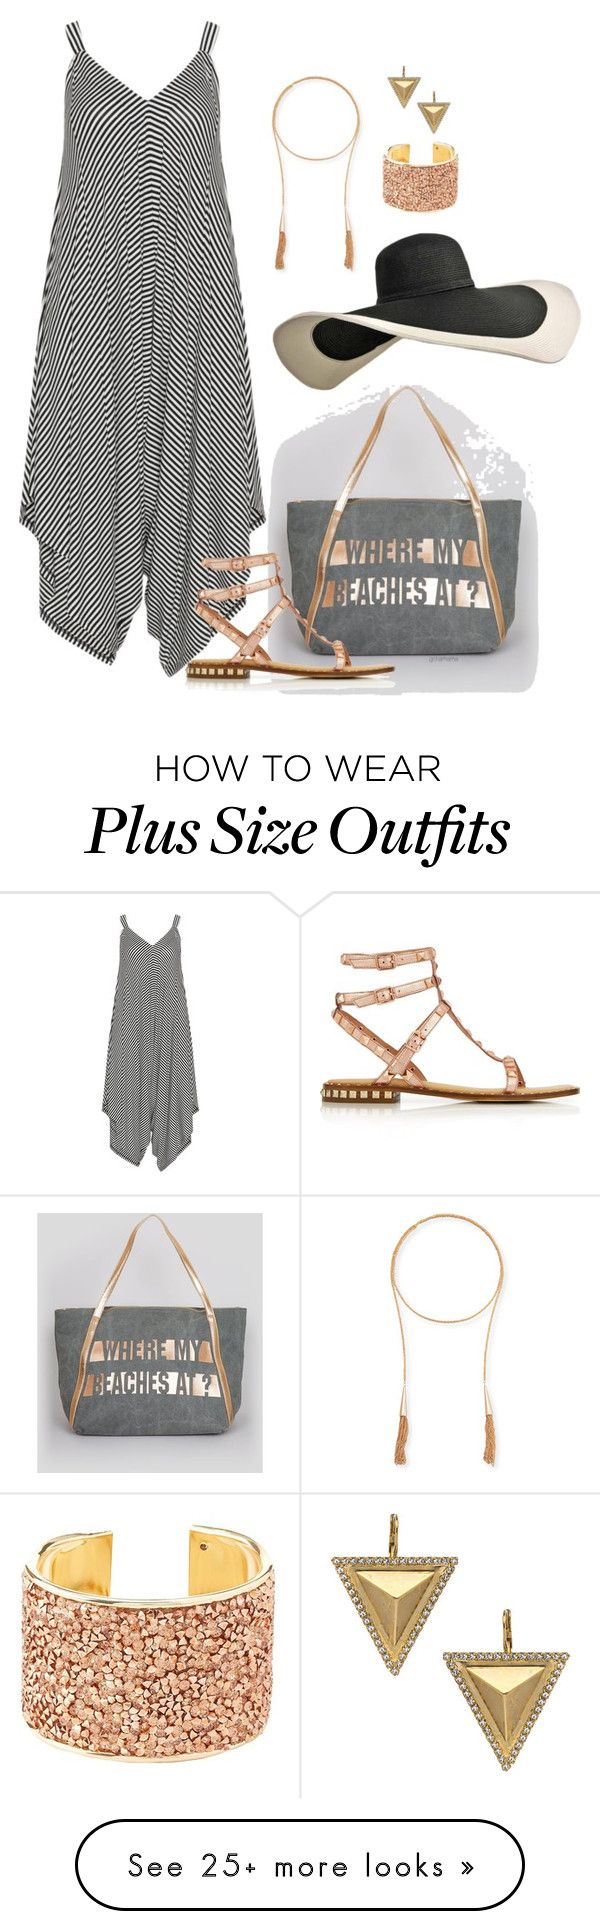 """""""Where my beaches at?- plus size"""" by gchamama on Polyvore featuring New Look, Mat, Ash, Kendra Scott, Charlotte Russe and Janis Savitt"""